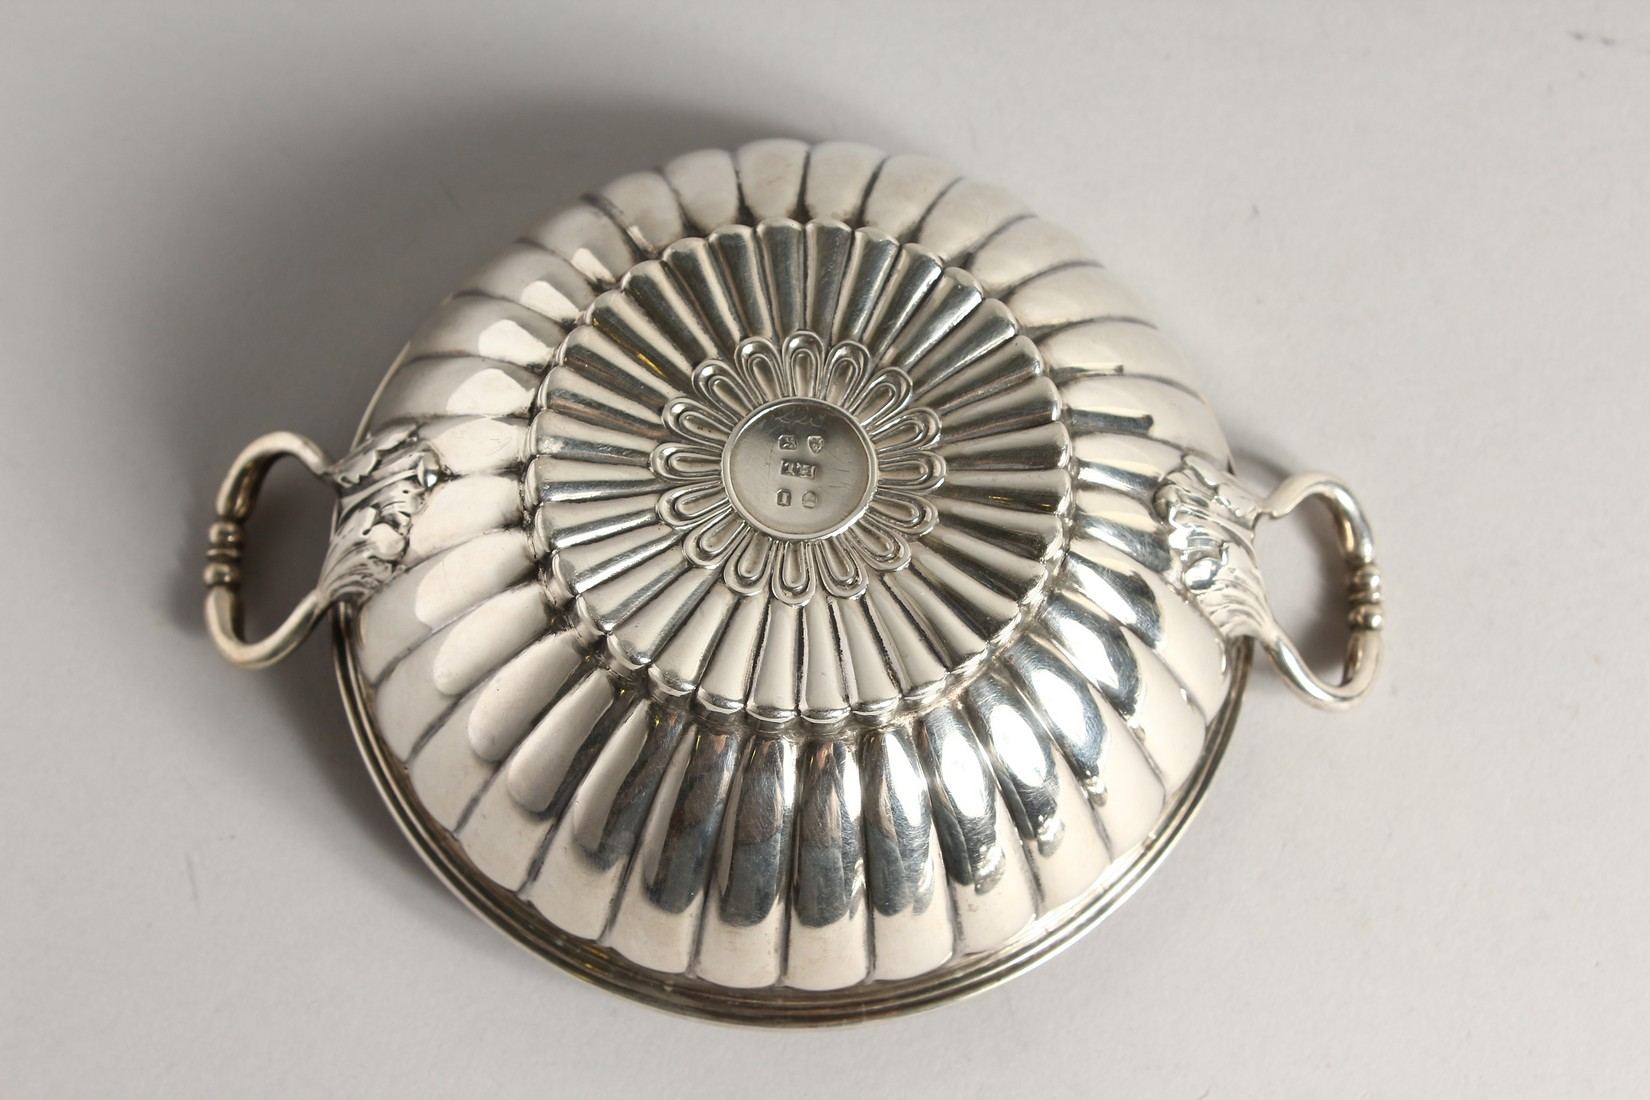 A GEORGE II SILVER CIRCULAR TWO HANDLED ECULLE and cover with fluted decorations. 5.5ins diameter - Image 6 of 7